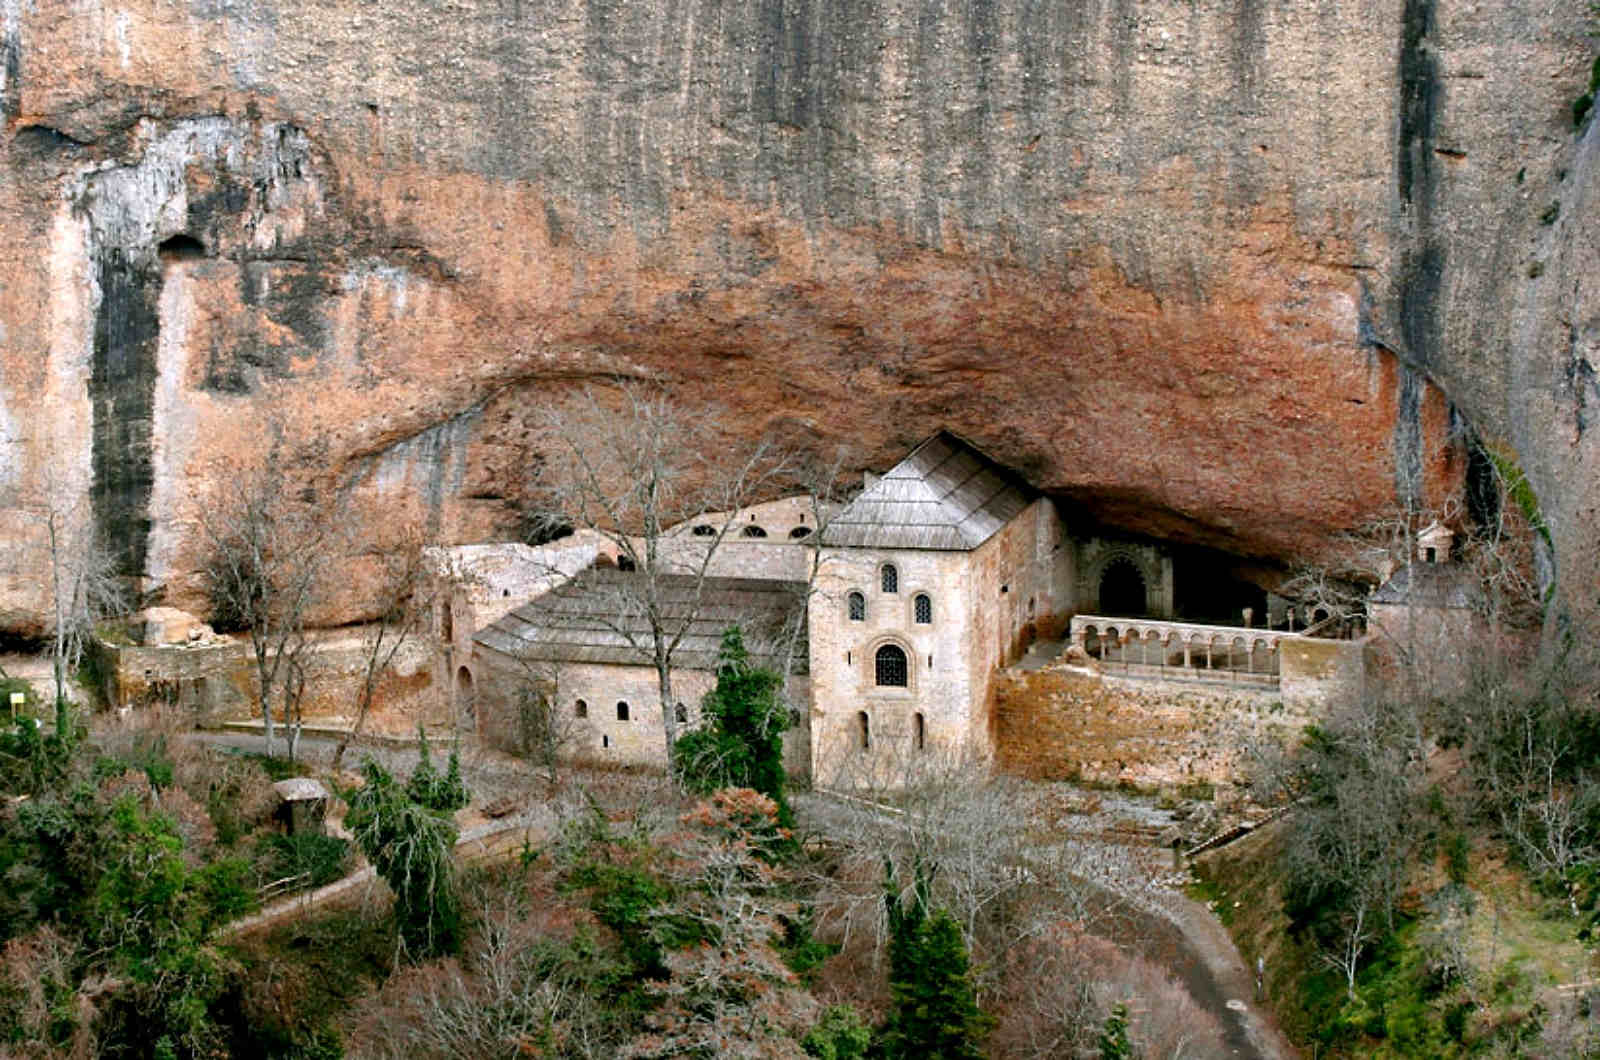 A view of the 10th century monastery of San Juan de la Peña at Jaca set in the mountain side on a visit on our Cultural Holiday Spain